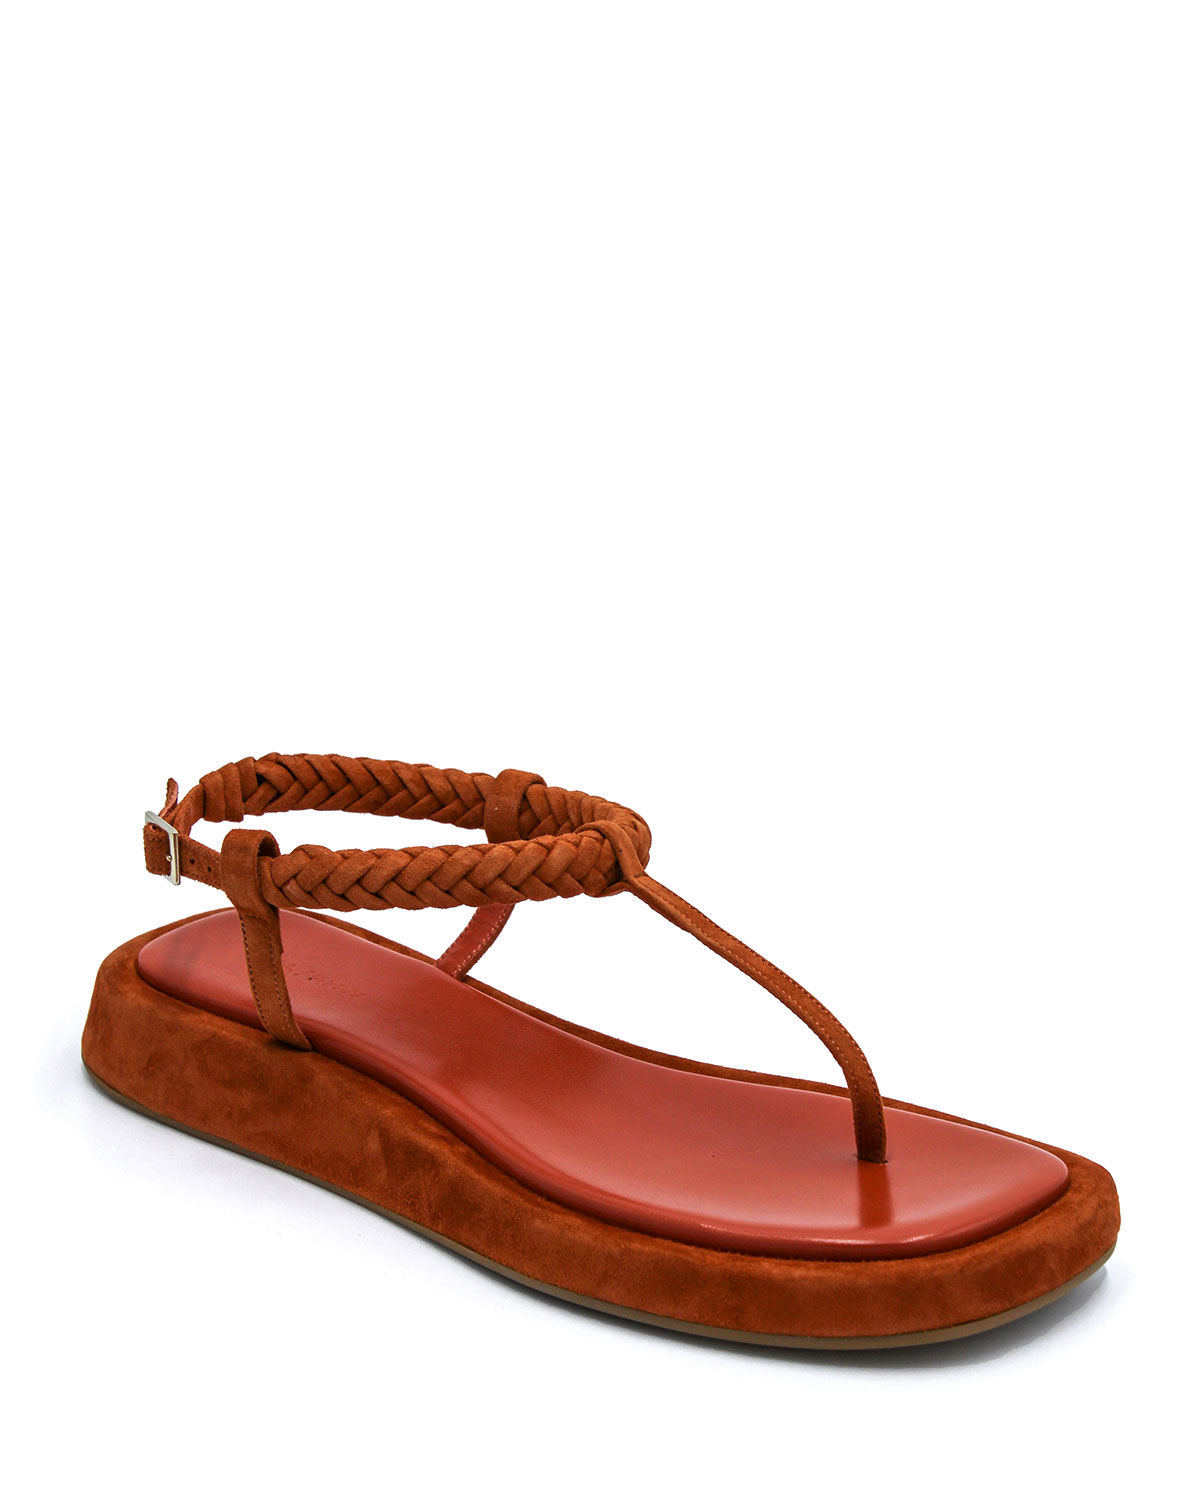 Braided Suede Thong Slingback Sandals